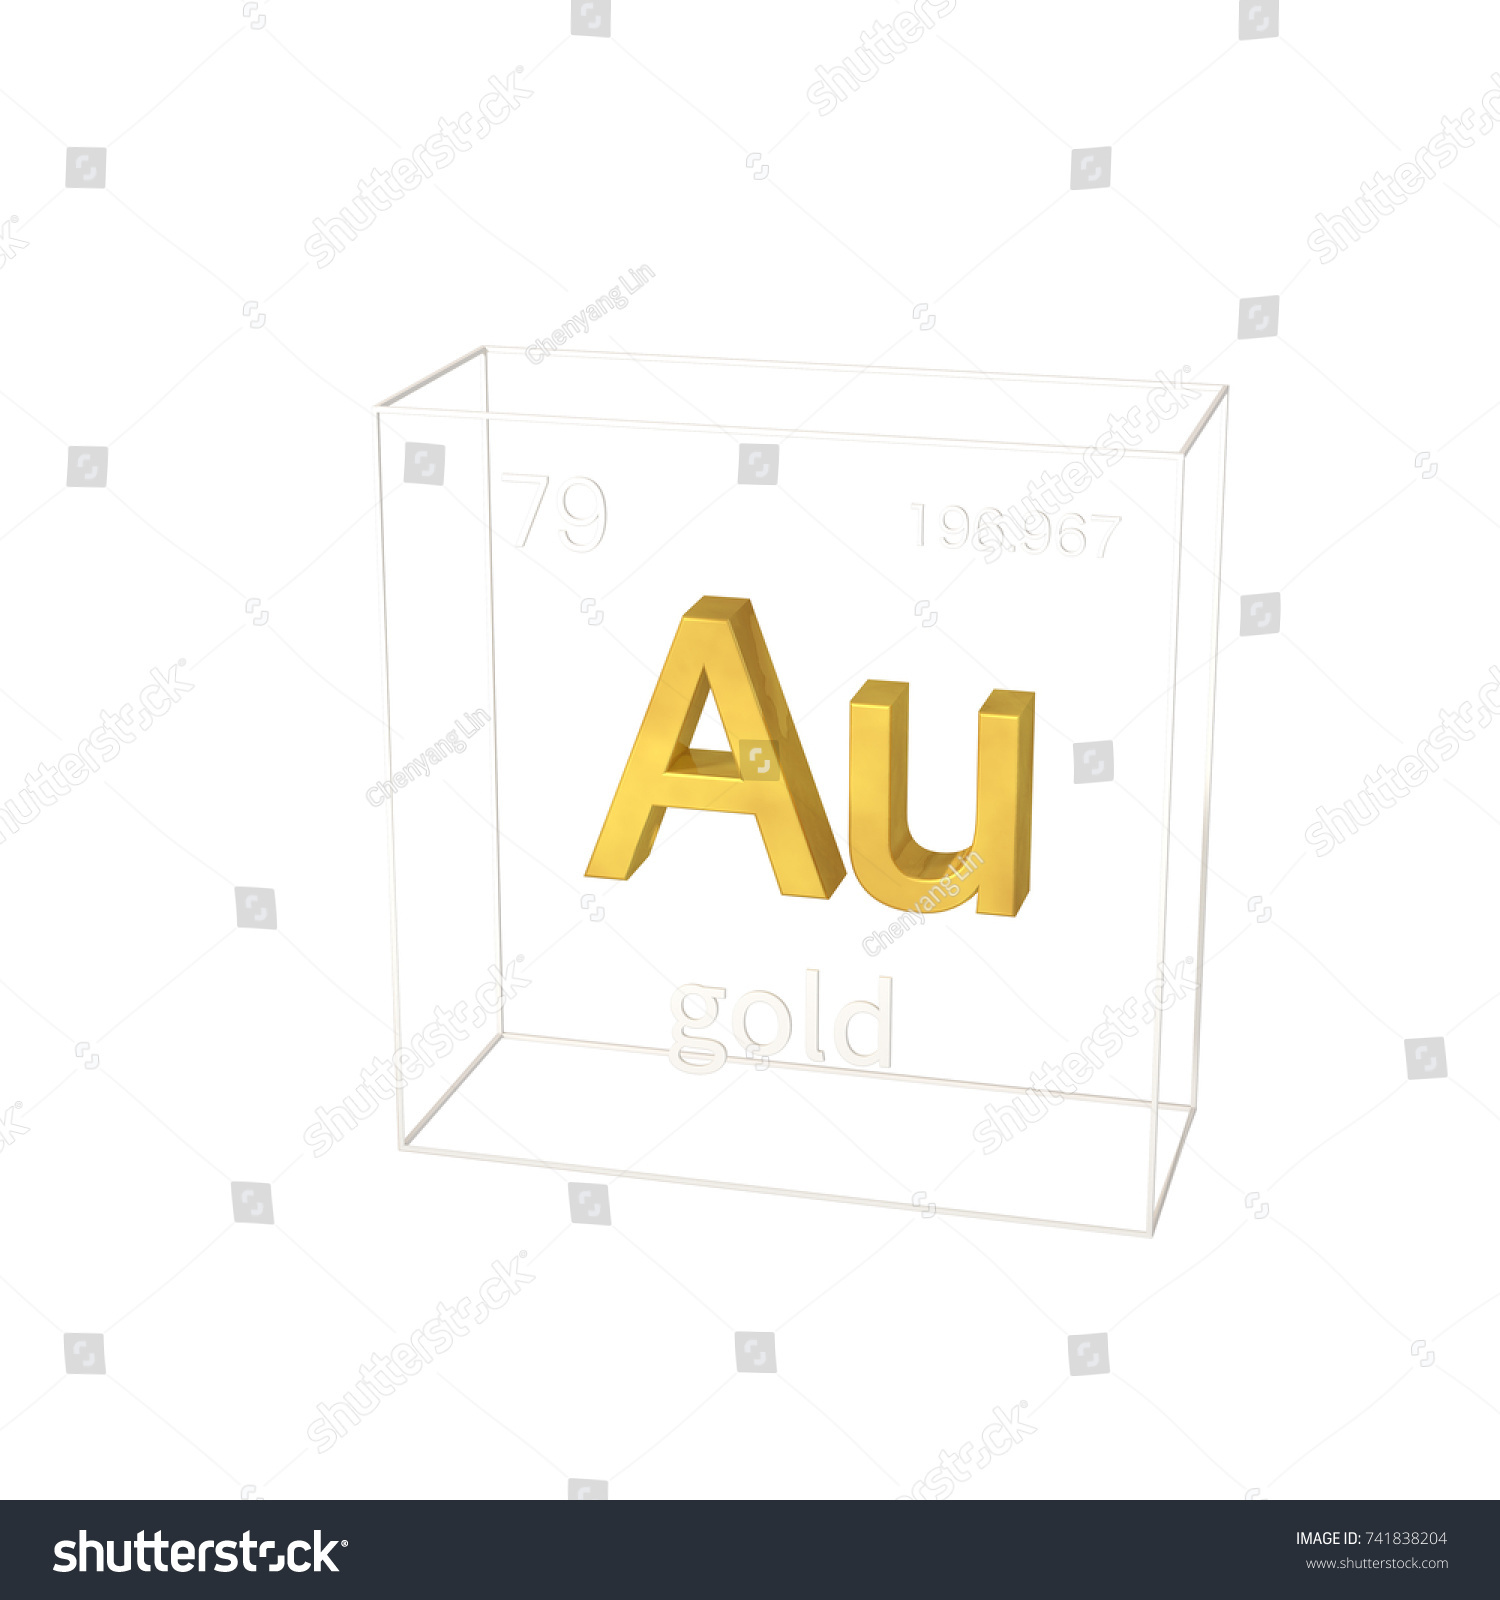 Gold periodic table symbol images periodic table images periodic table symbol for gold drawing free software finite state what is the abbreviation for gold gamestrikefo Gallery